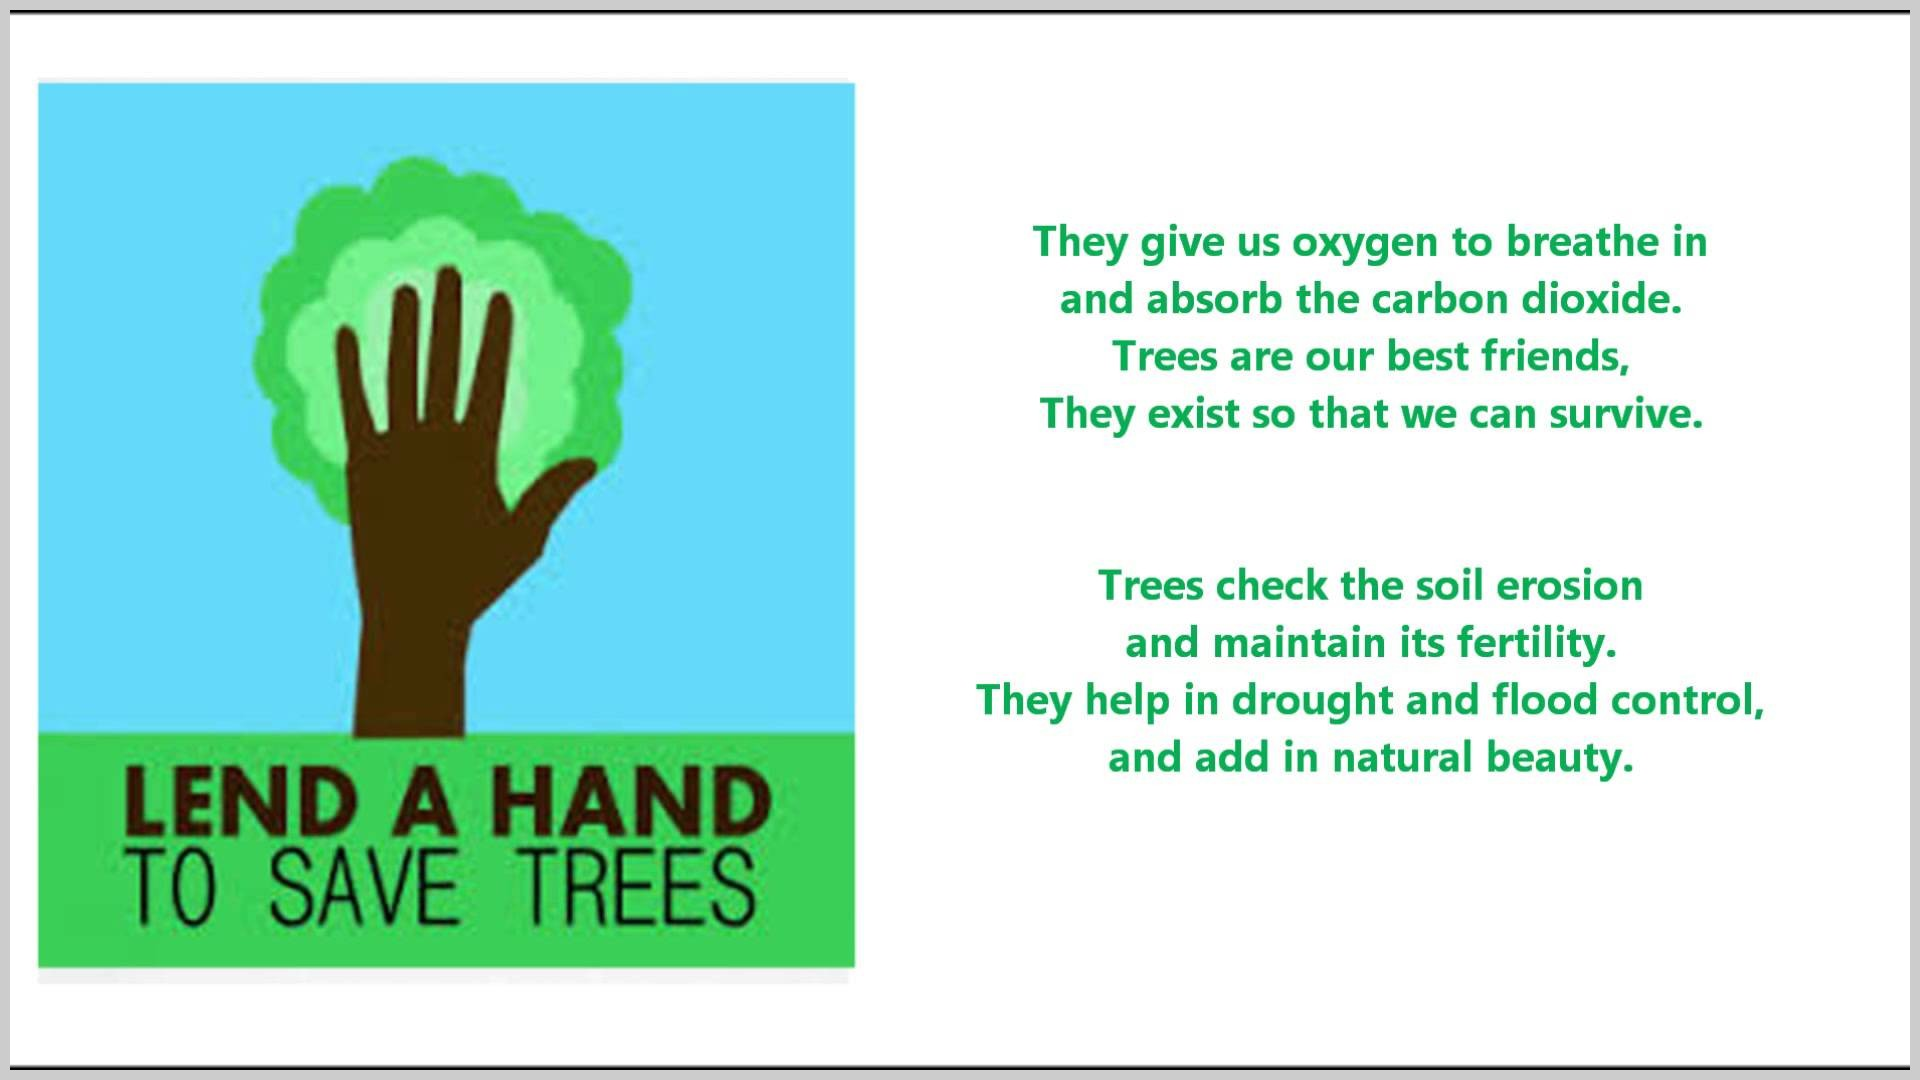 015 How Can We Save Trees Essay Example Of Our Best Friends Poem For Marvelous To In Hindi Telugu Full